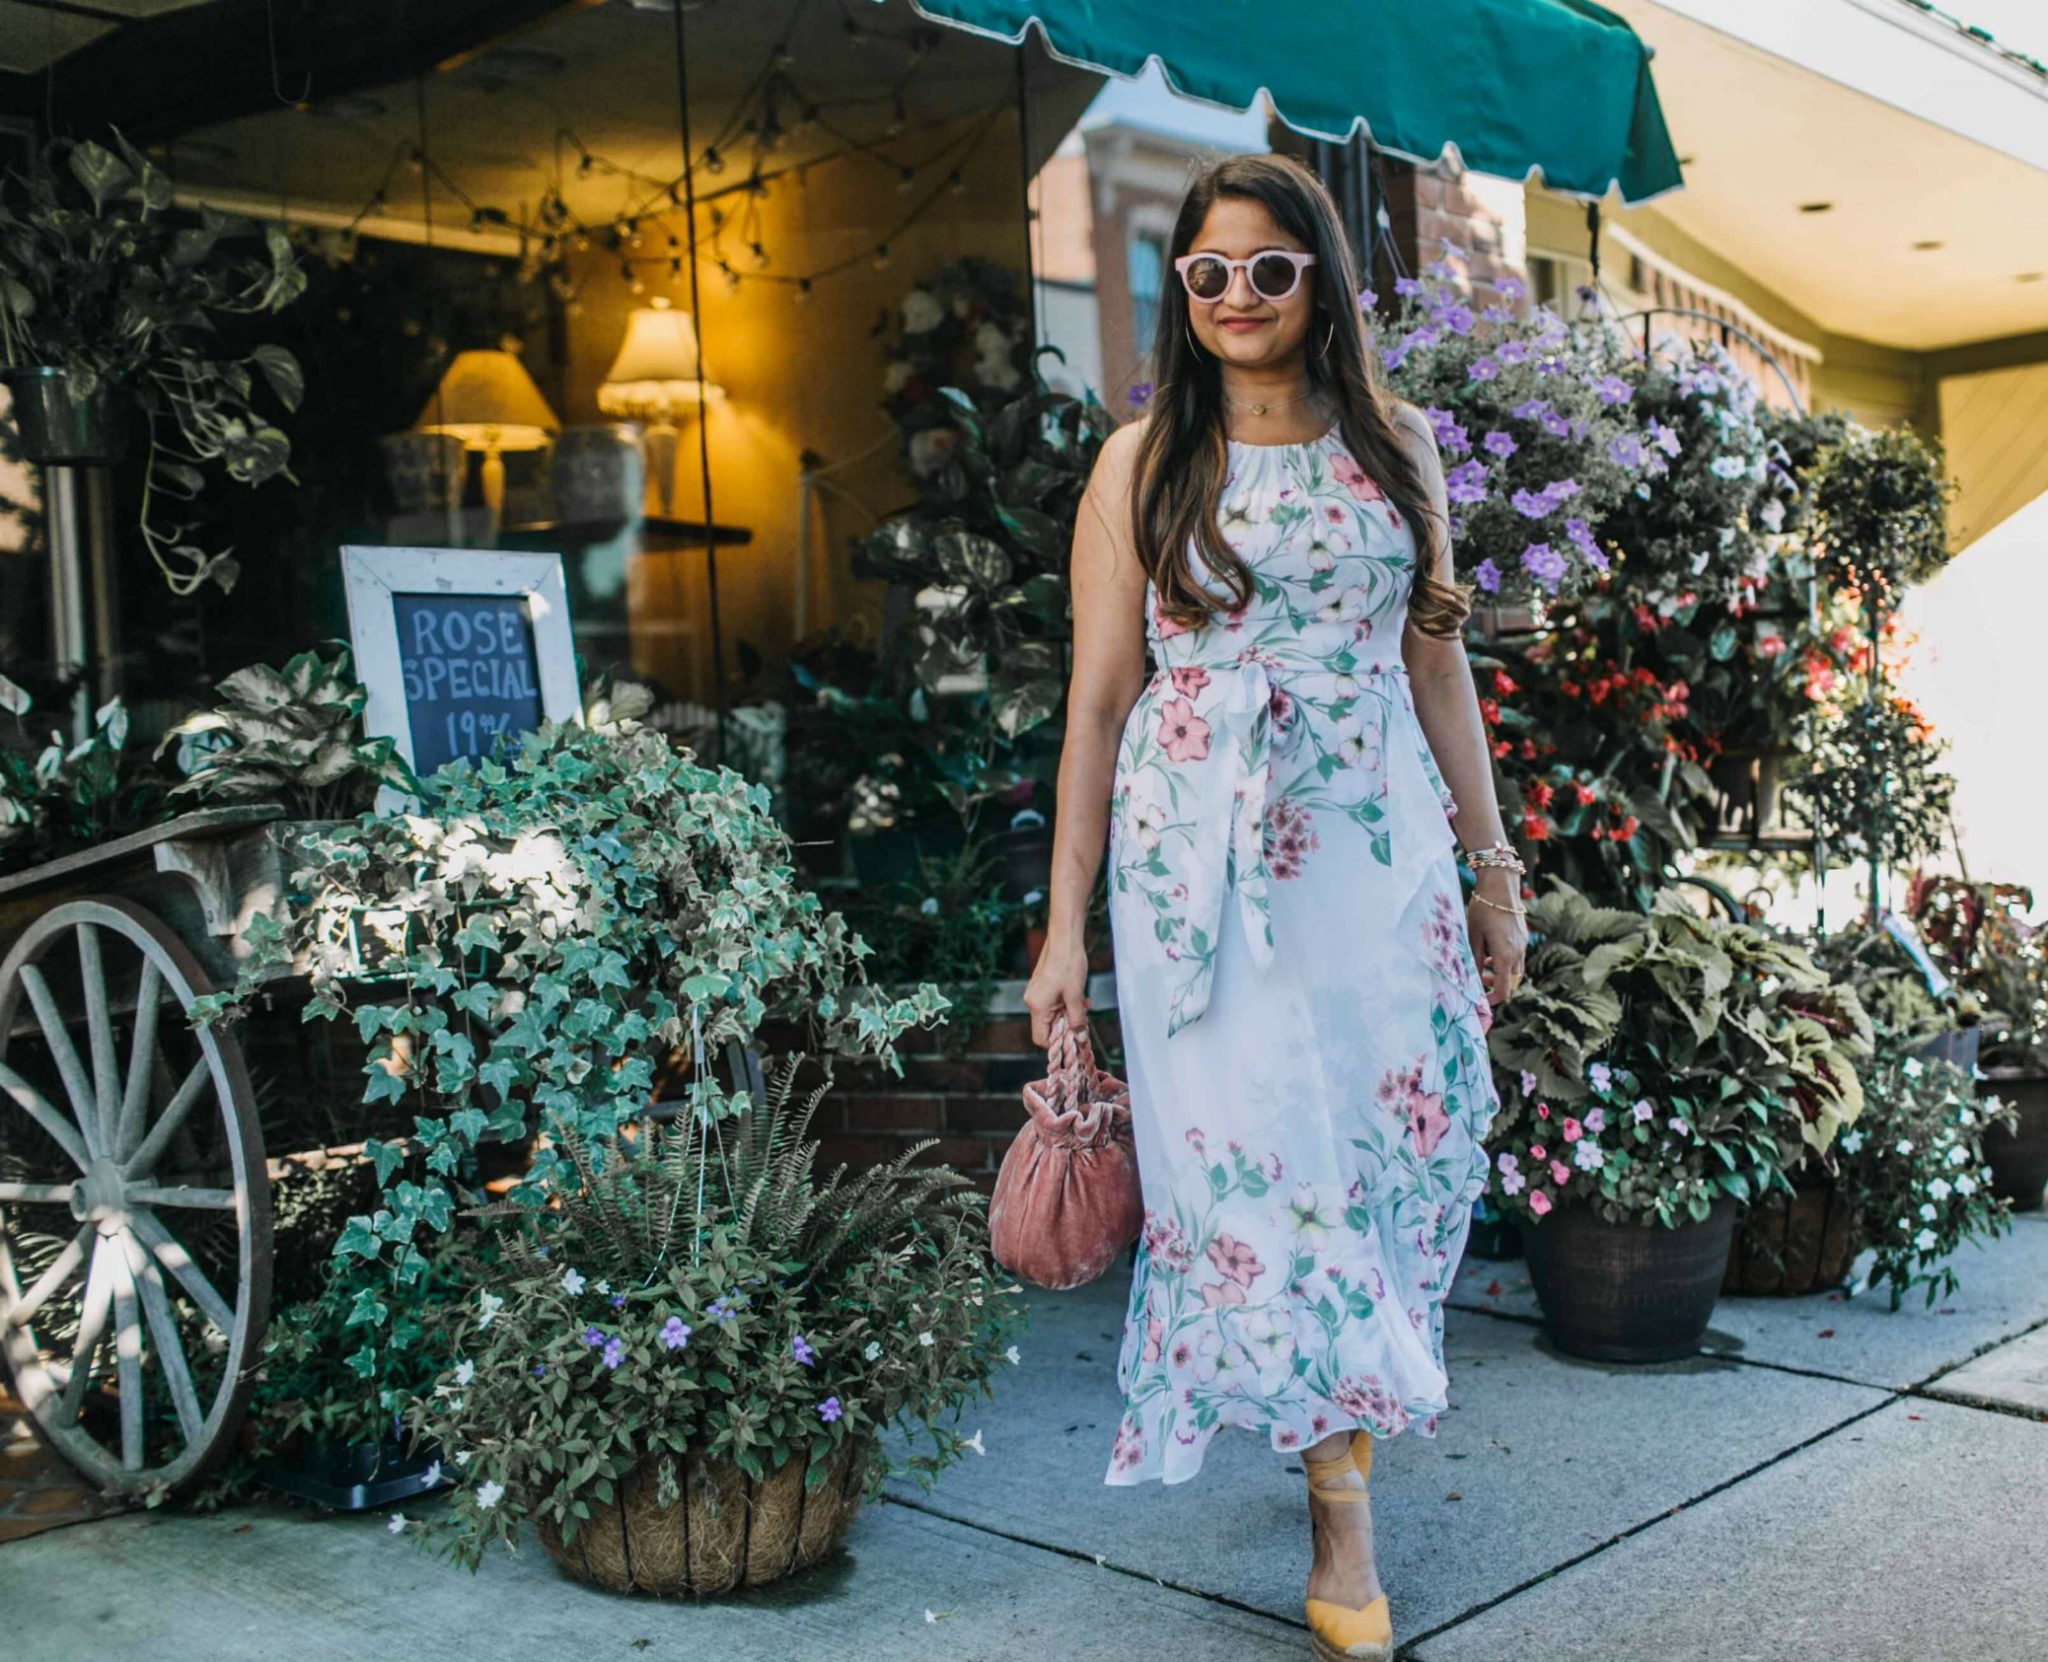 wearing R & K Originals Sleeveless Floral Maxi Dress - JCPenney 3 | | Cute Wedding Guest Dresses for Summer featured by popular US modest fashion blogger, Dreaming Loud